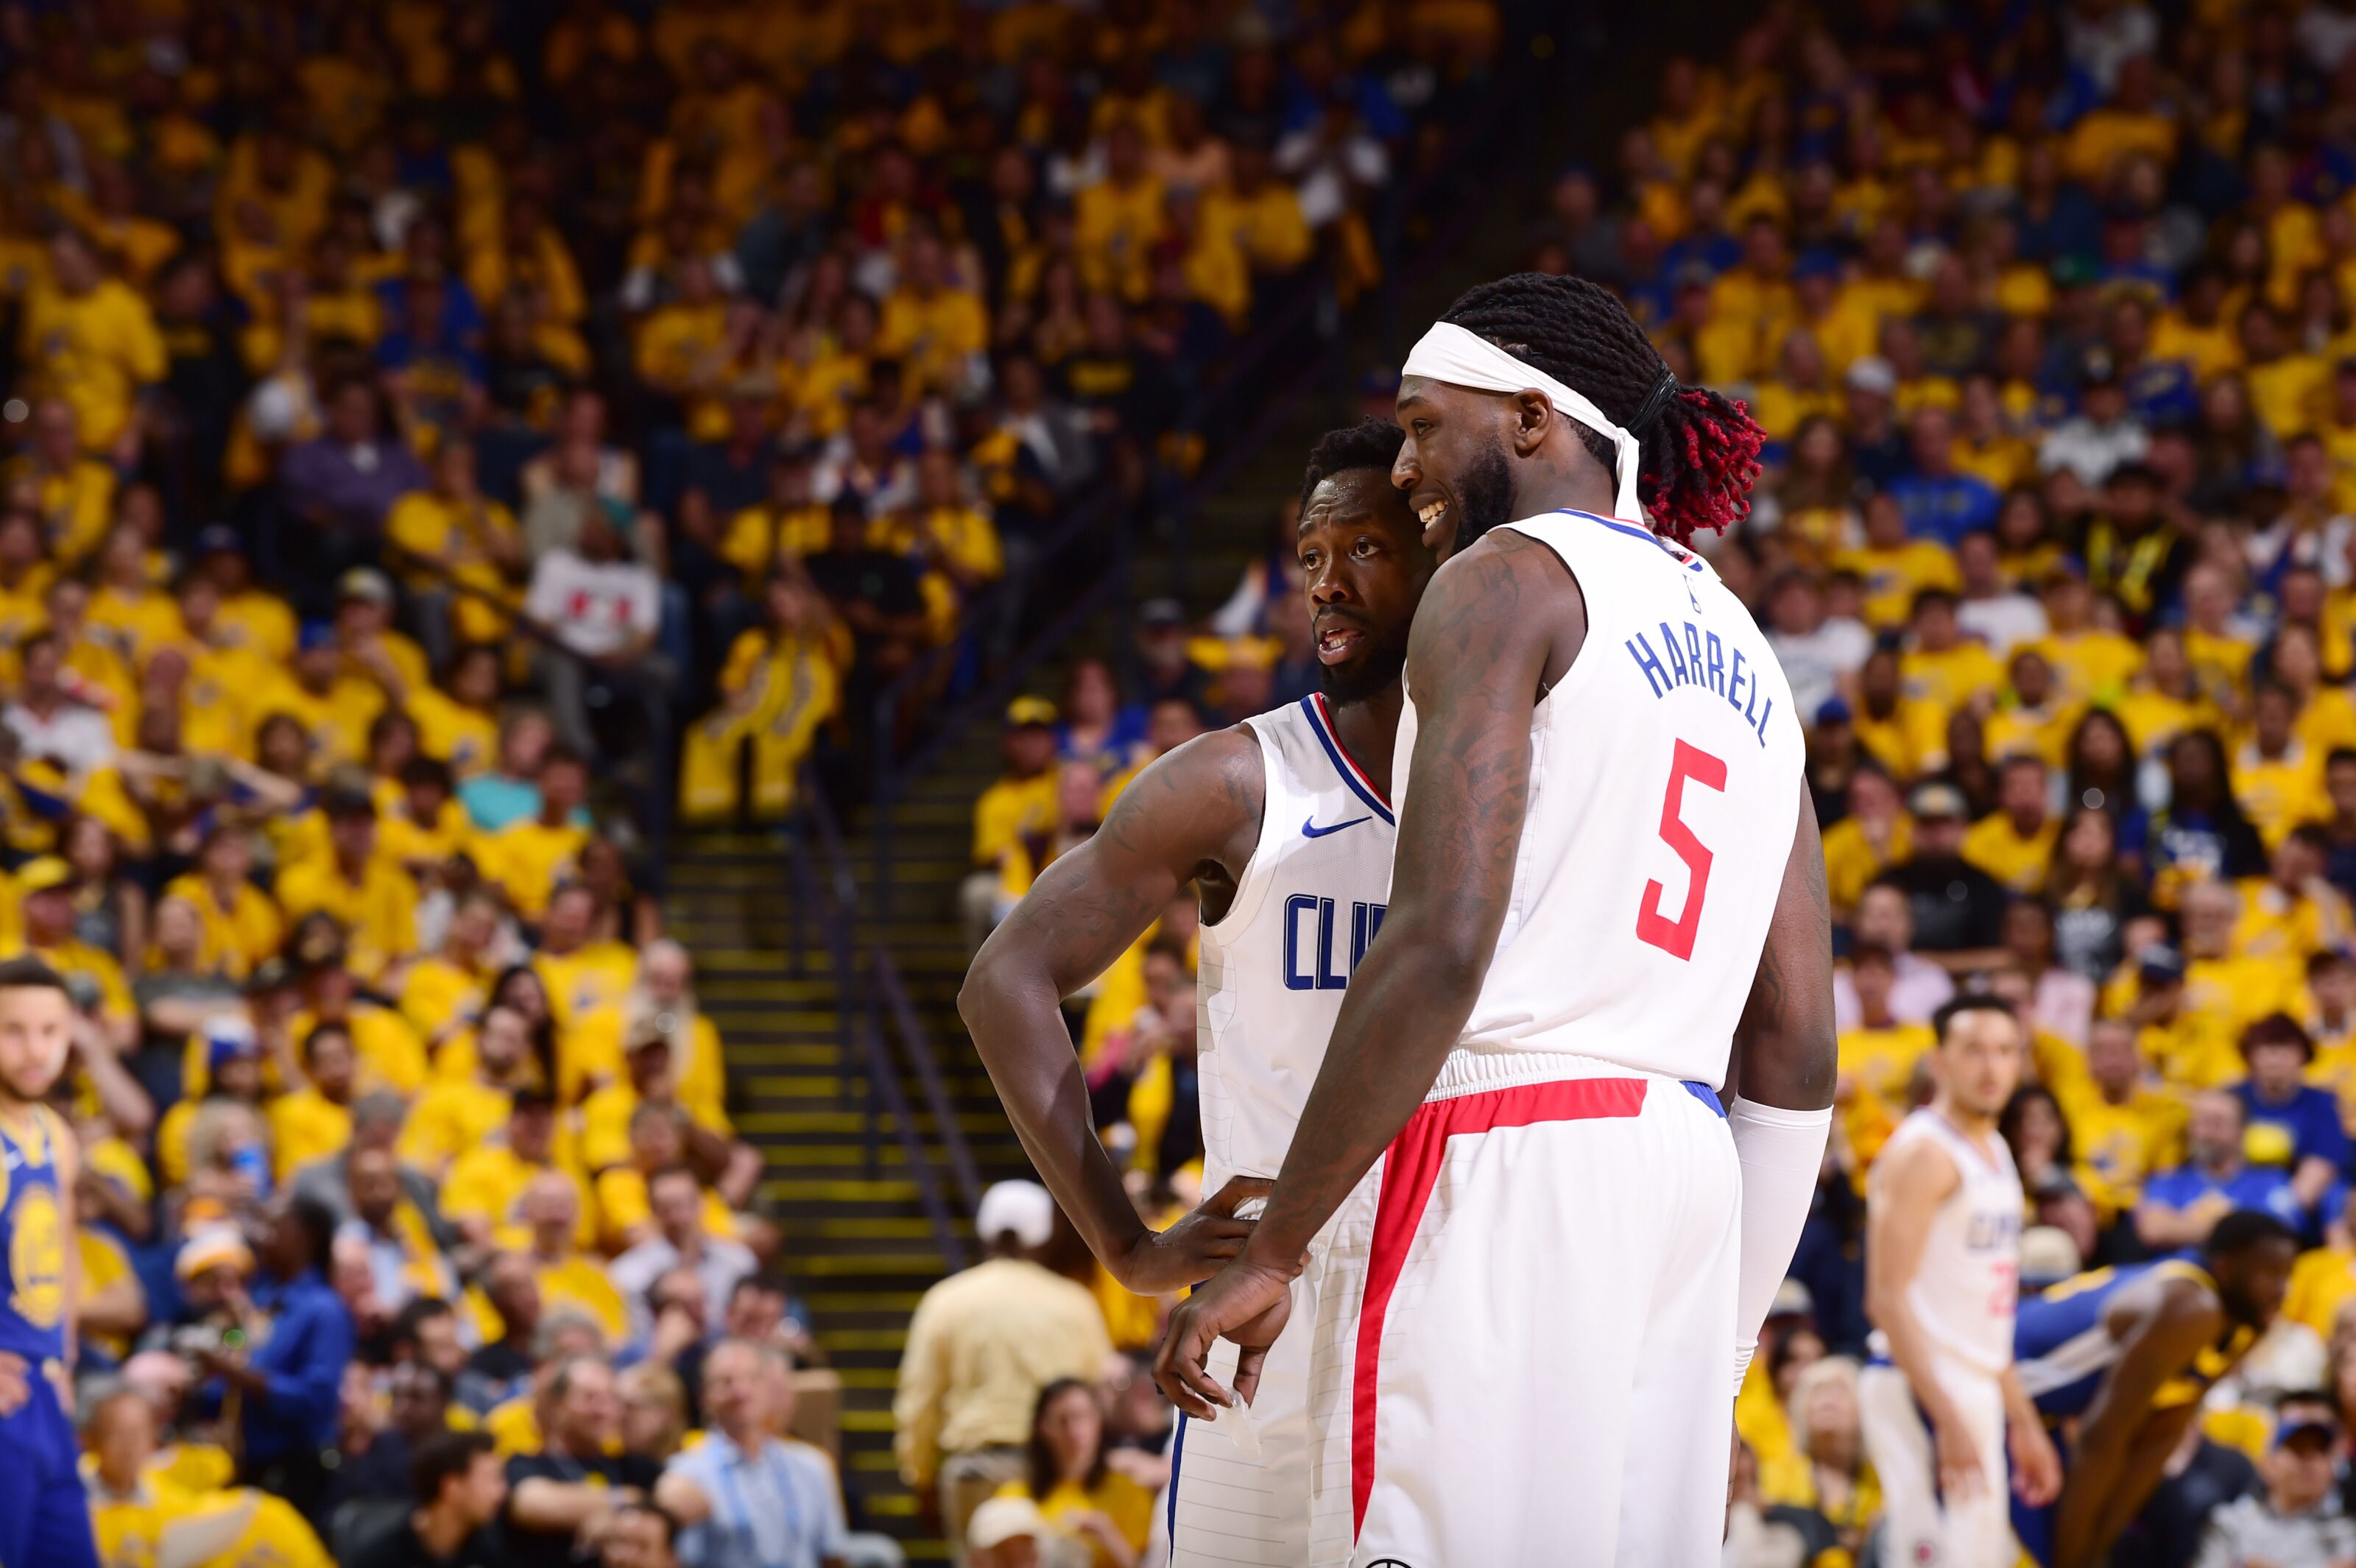 OAKLAND, CA - APRIL 24: Patrick Beverley #21 and Montrezl Harrell #5 of the LA Clippers talk during Game Five of Round One of the 2019 NBA Playoffs against the Golden State Warriors on April 24, 2019 at ORACLE Arena in Oakland, California. NOTE TO USER: User expressly acknowledges and agrees that, by downloading and/or using this photograph, user is consenting to the terms and conditions of Getty Images License Agreement. Mandatory Copyright Notice: Copyright 2019 NBAE (Photo by Noah Graham/NBAE via Getty Images)